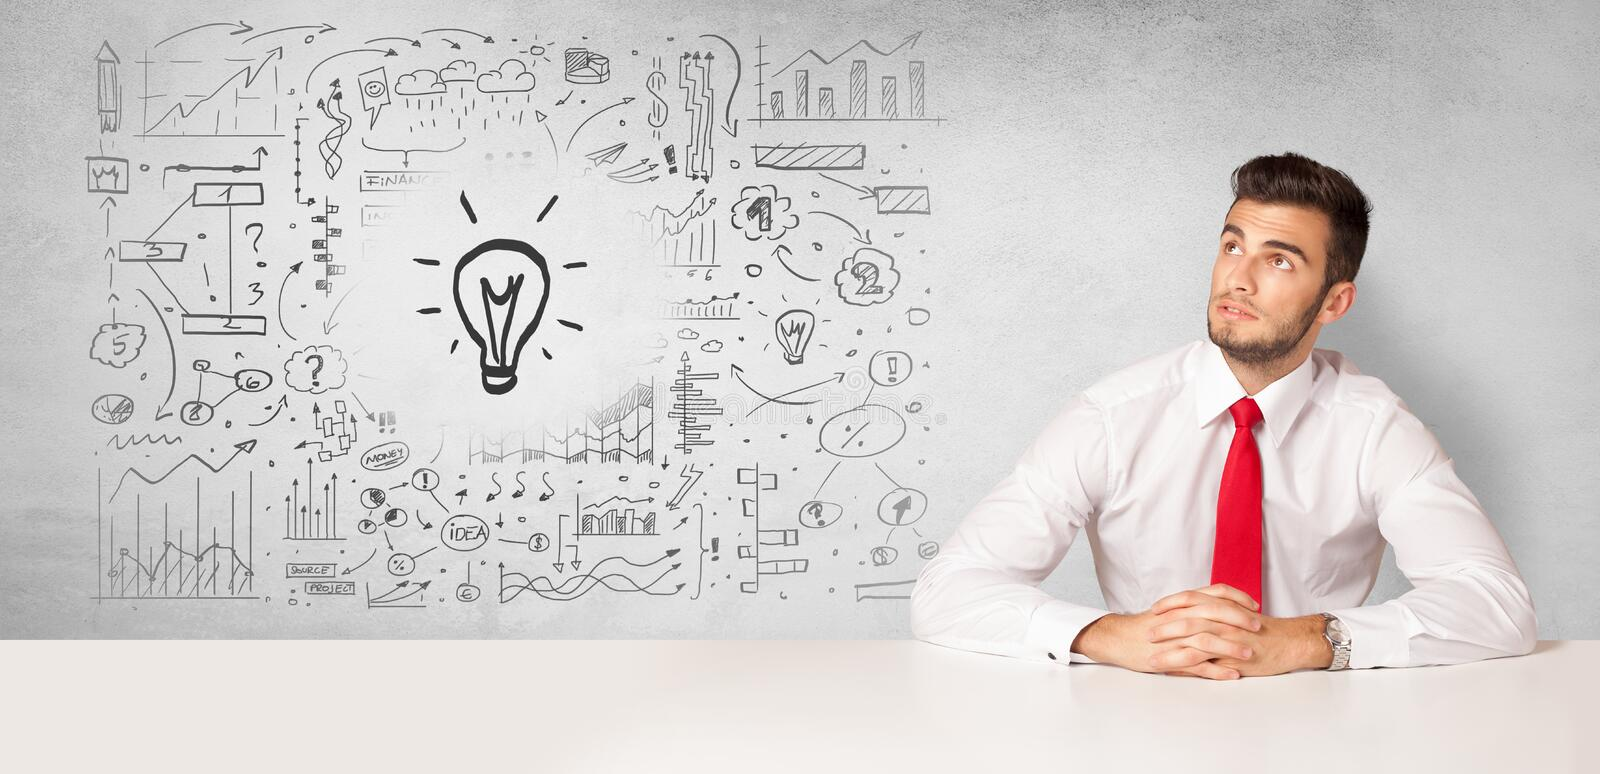 Business person with new idea concept stock photo